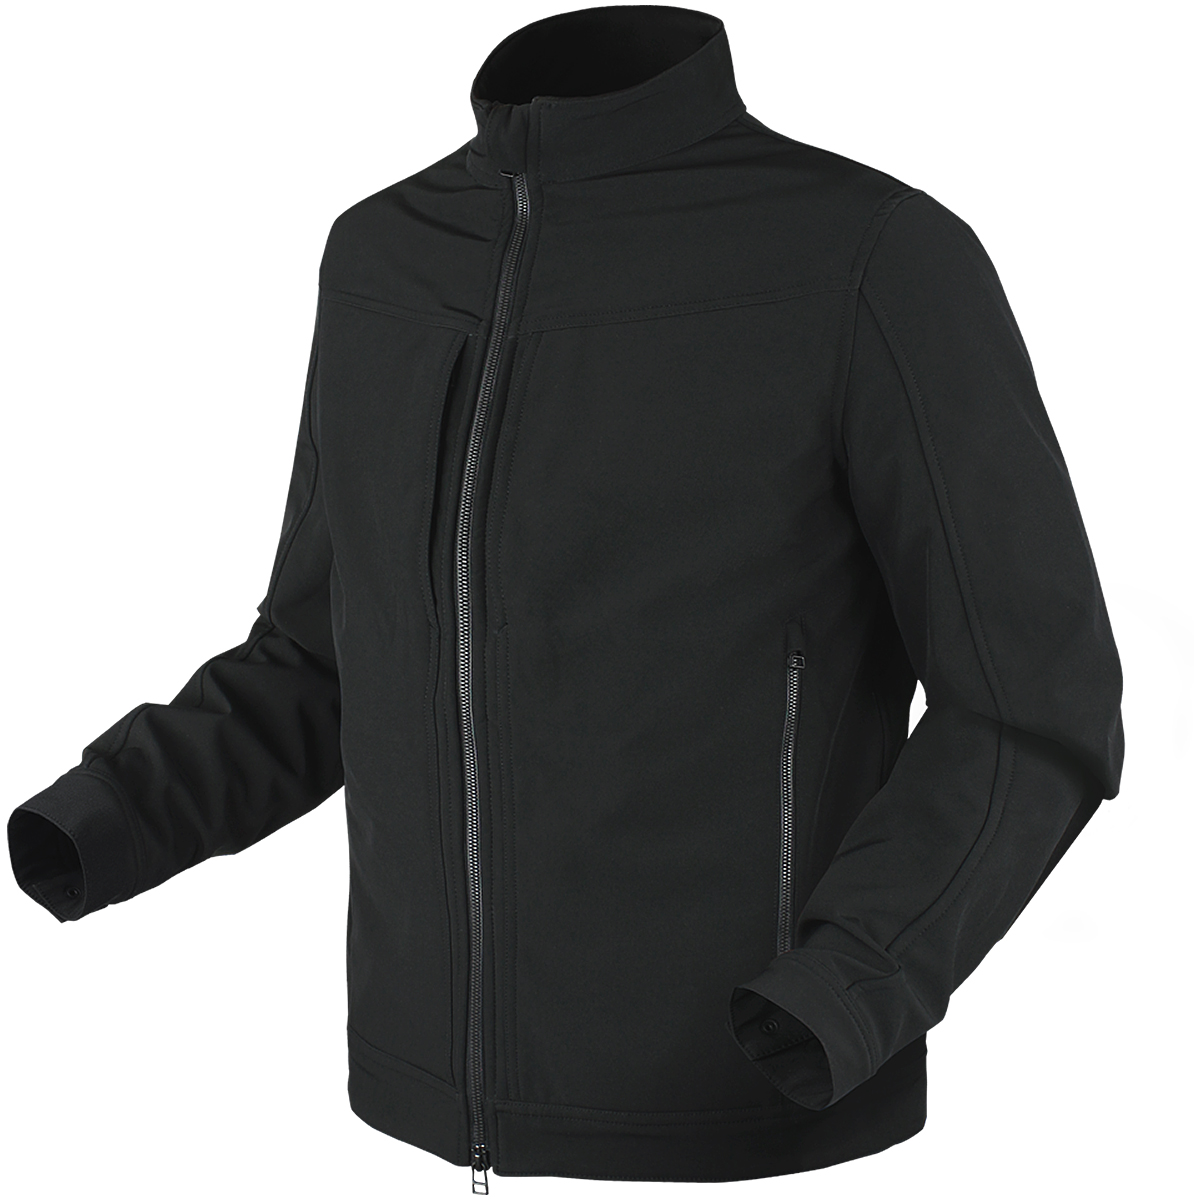 Condor Intrepid Softshell Jacket Black Soft Shell